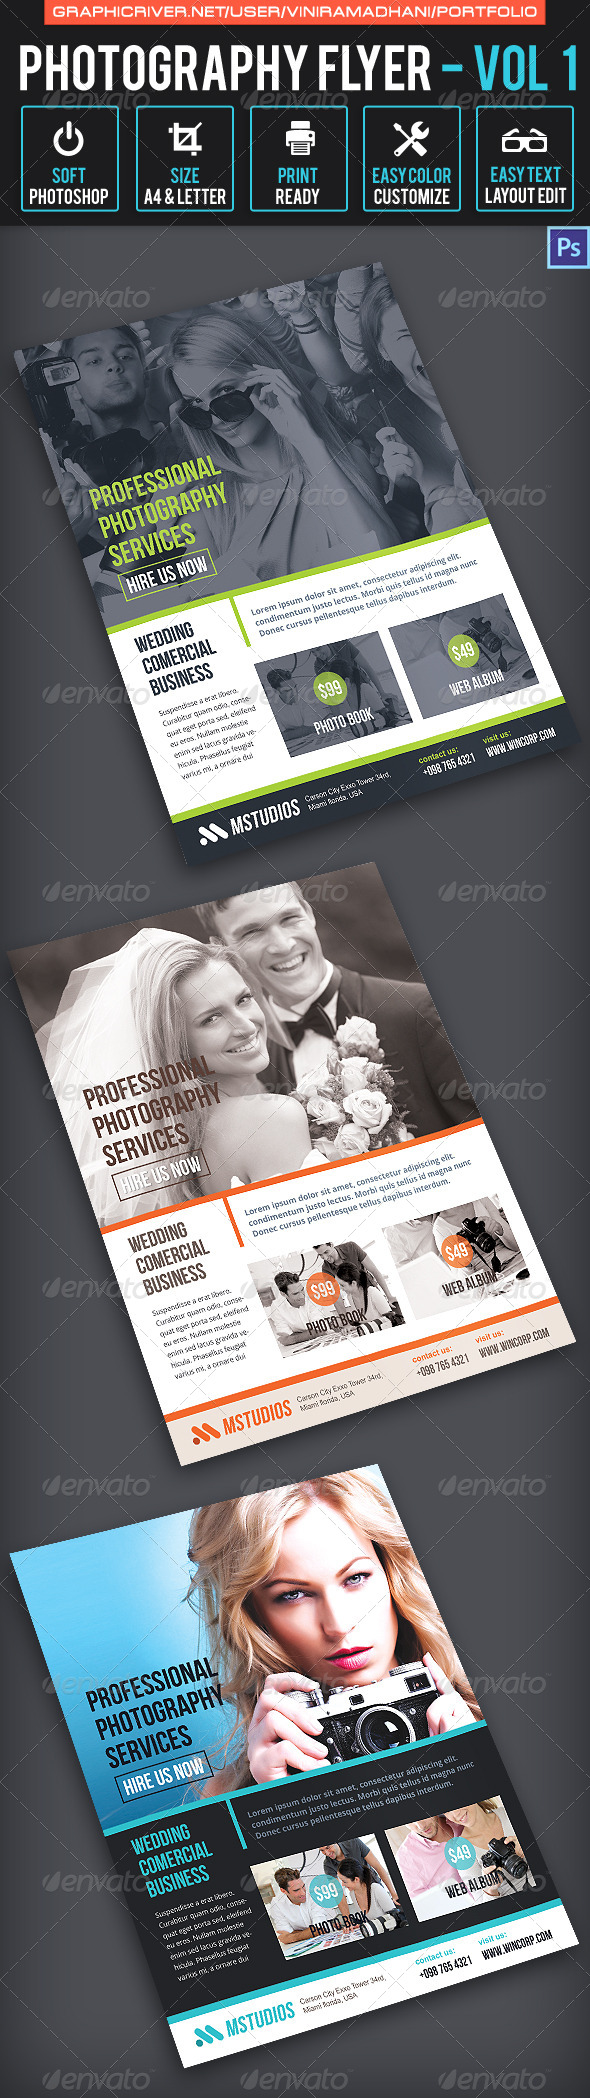 Photography Flyer   Volume 1 - Corporate Flyers